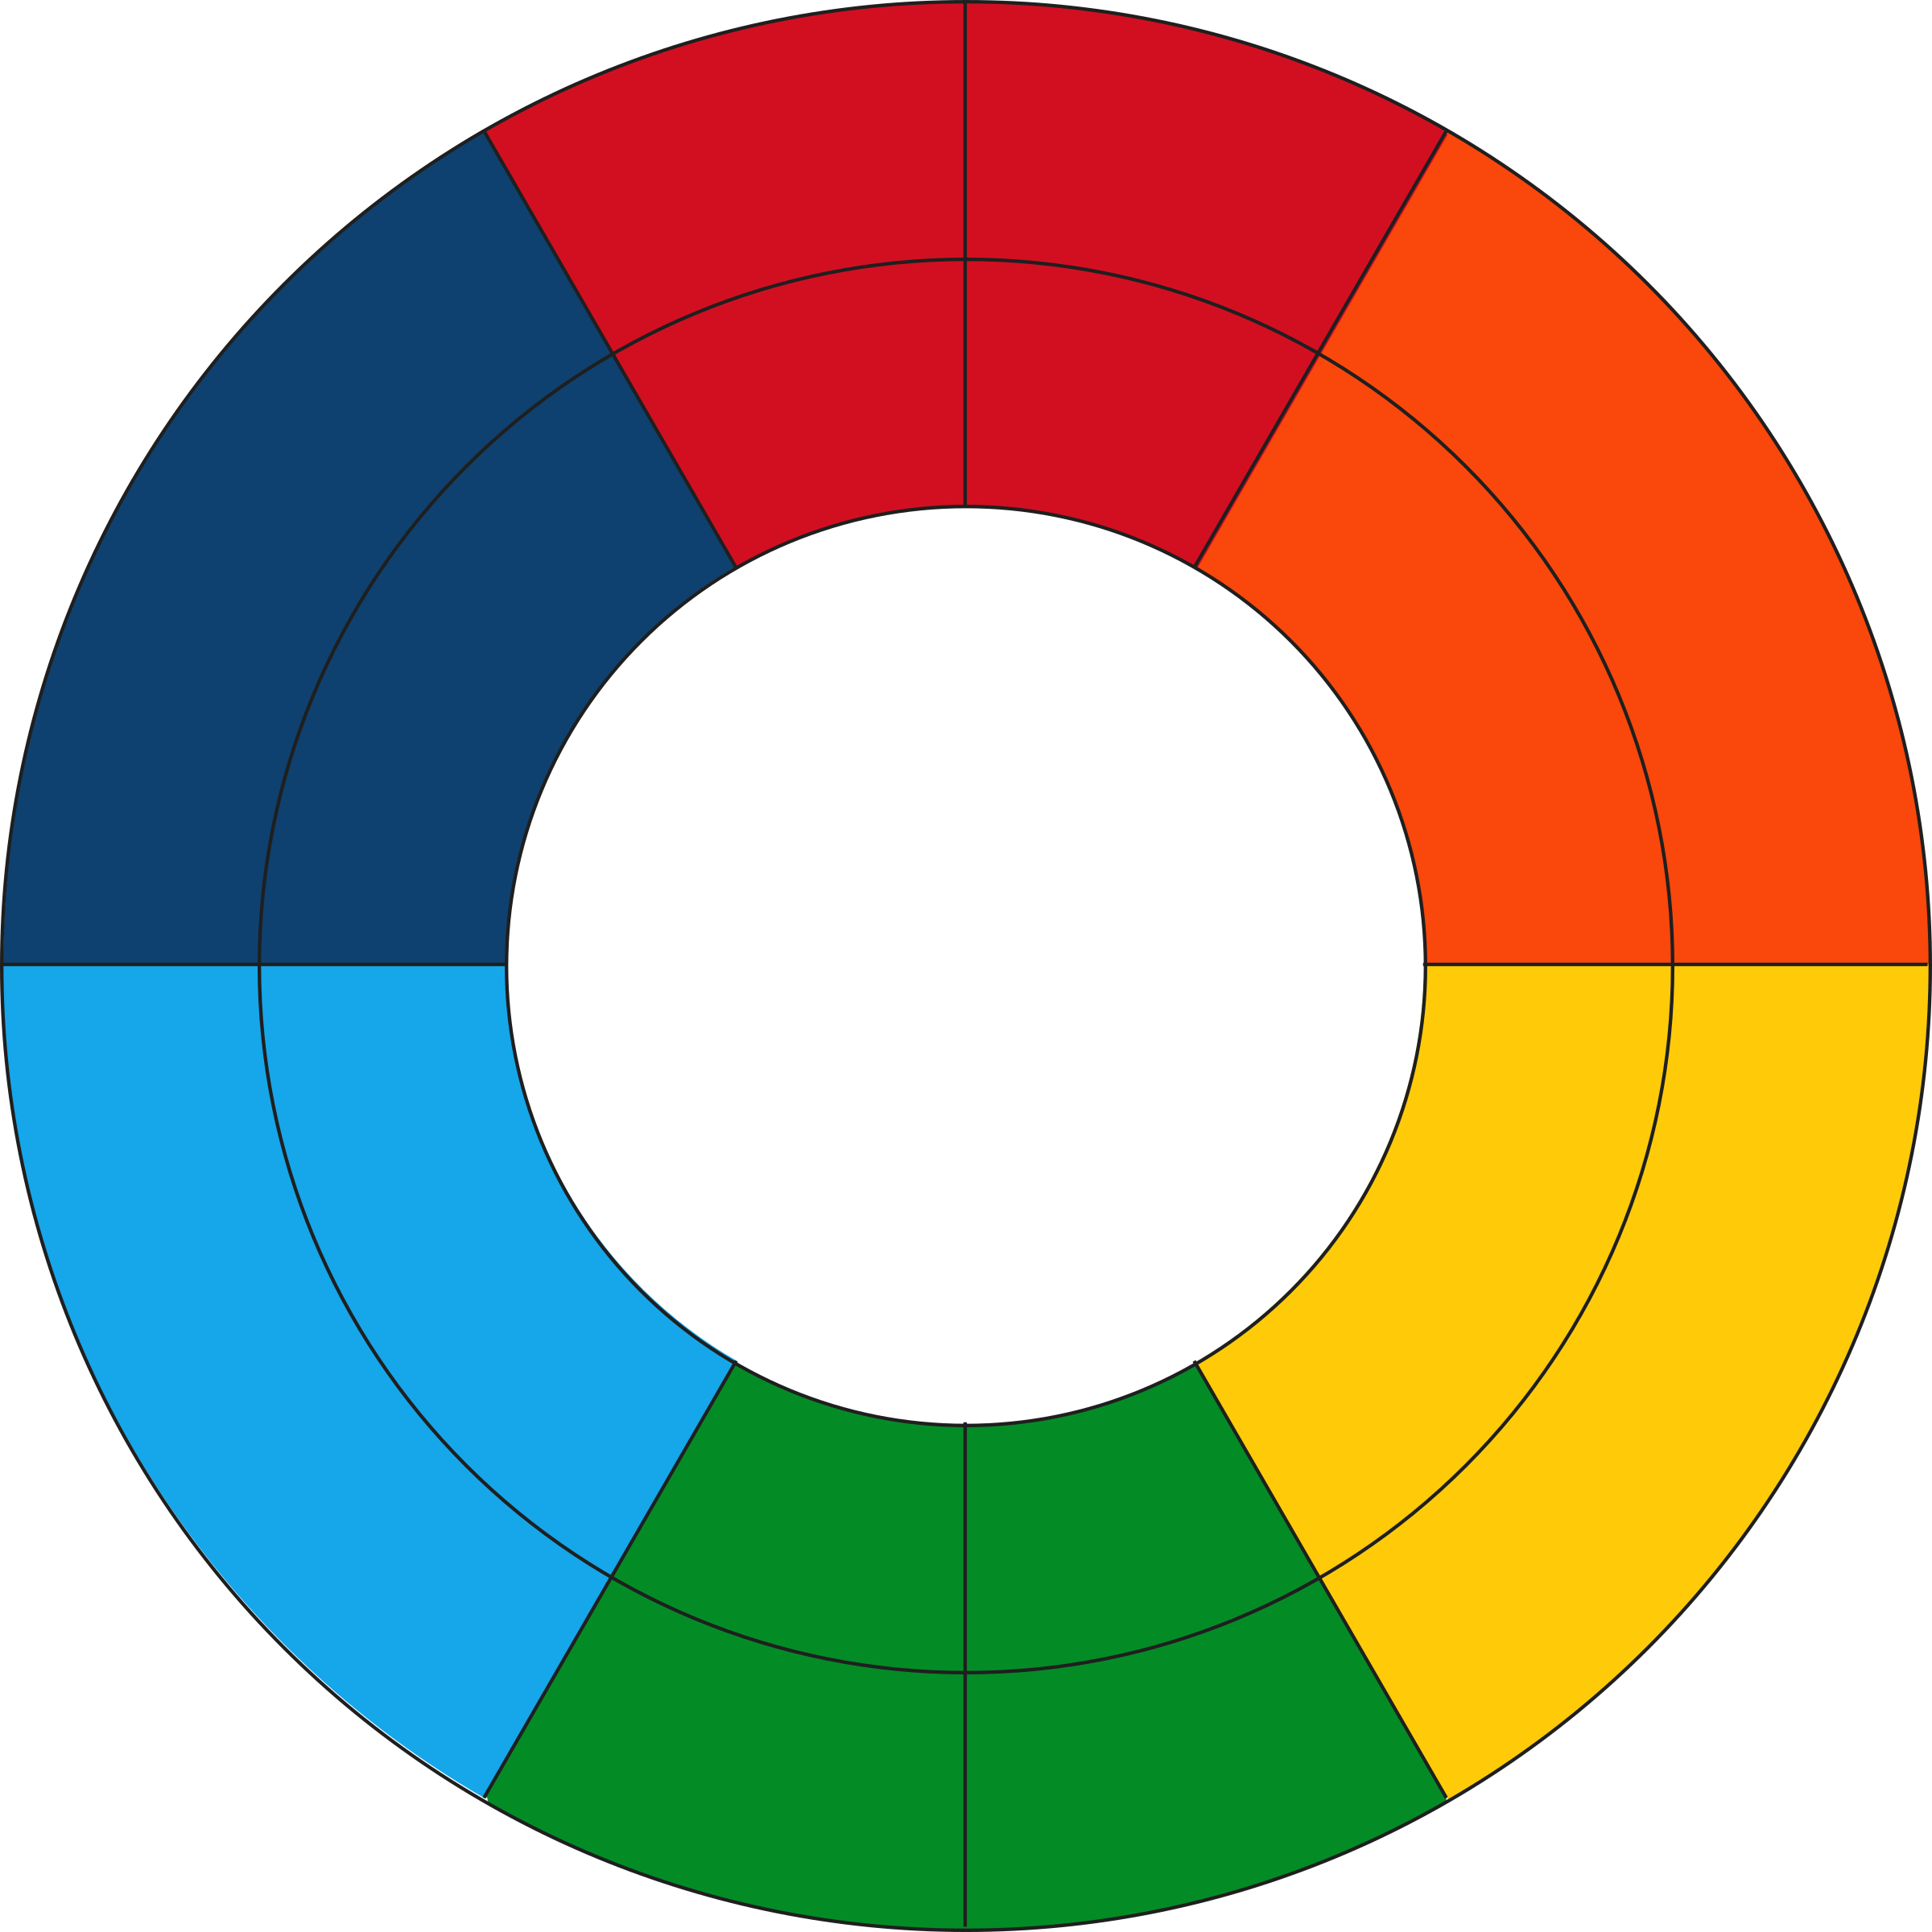 Goethe's Color Wheel (fresh) by qubodup